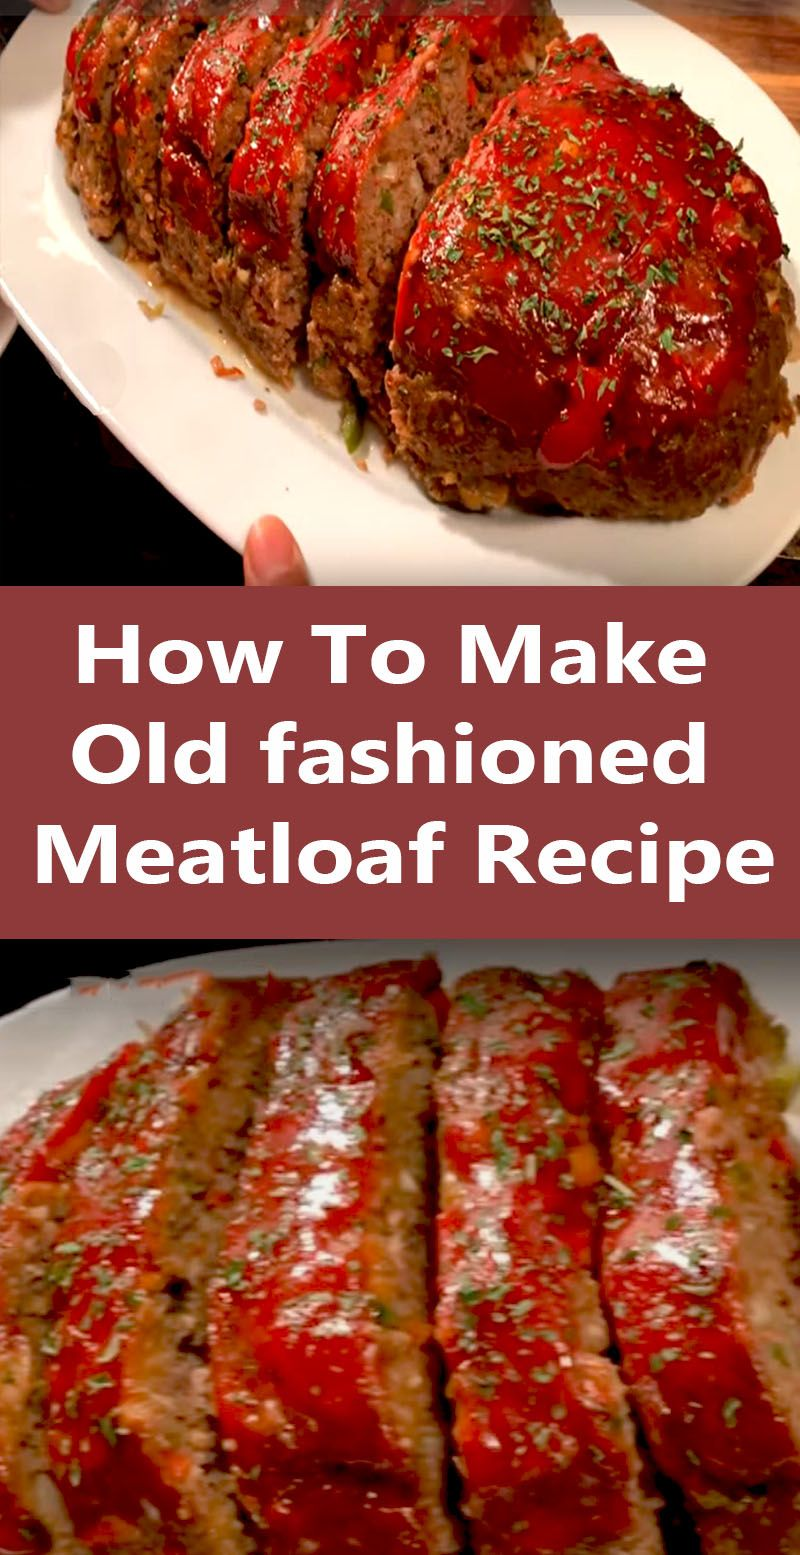 How To Make Old-fashioned Meatloaf Recipe | Superfashion.us